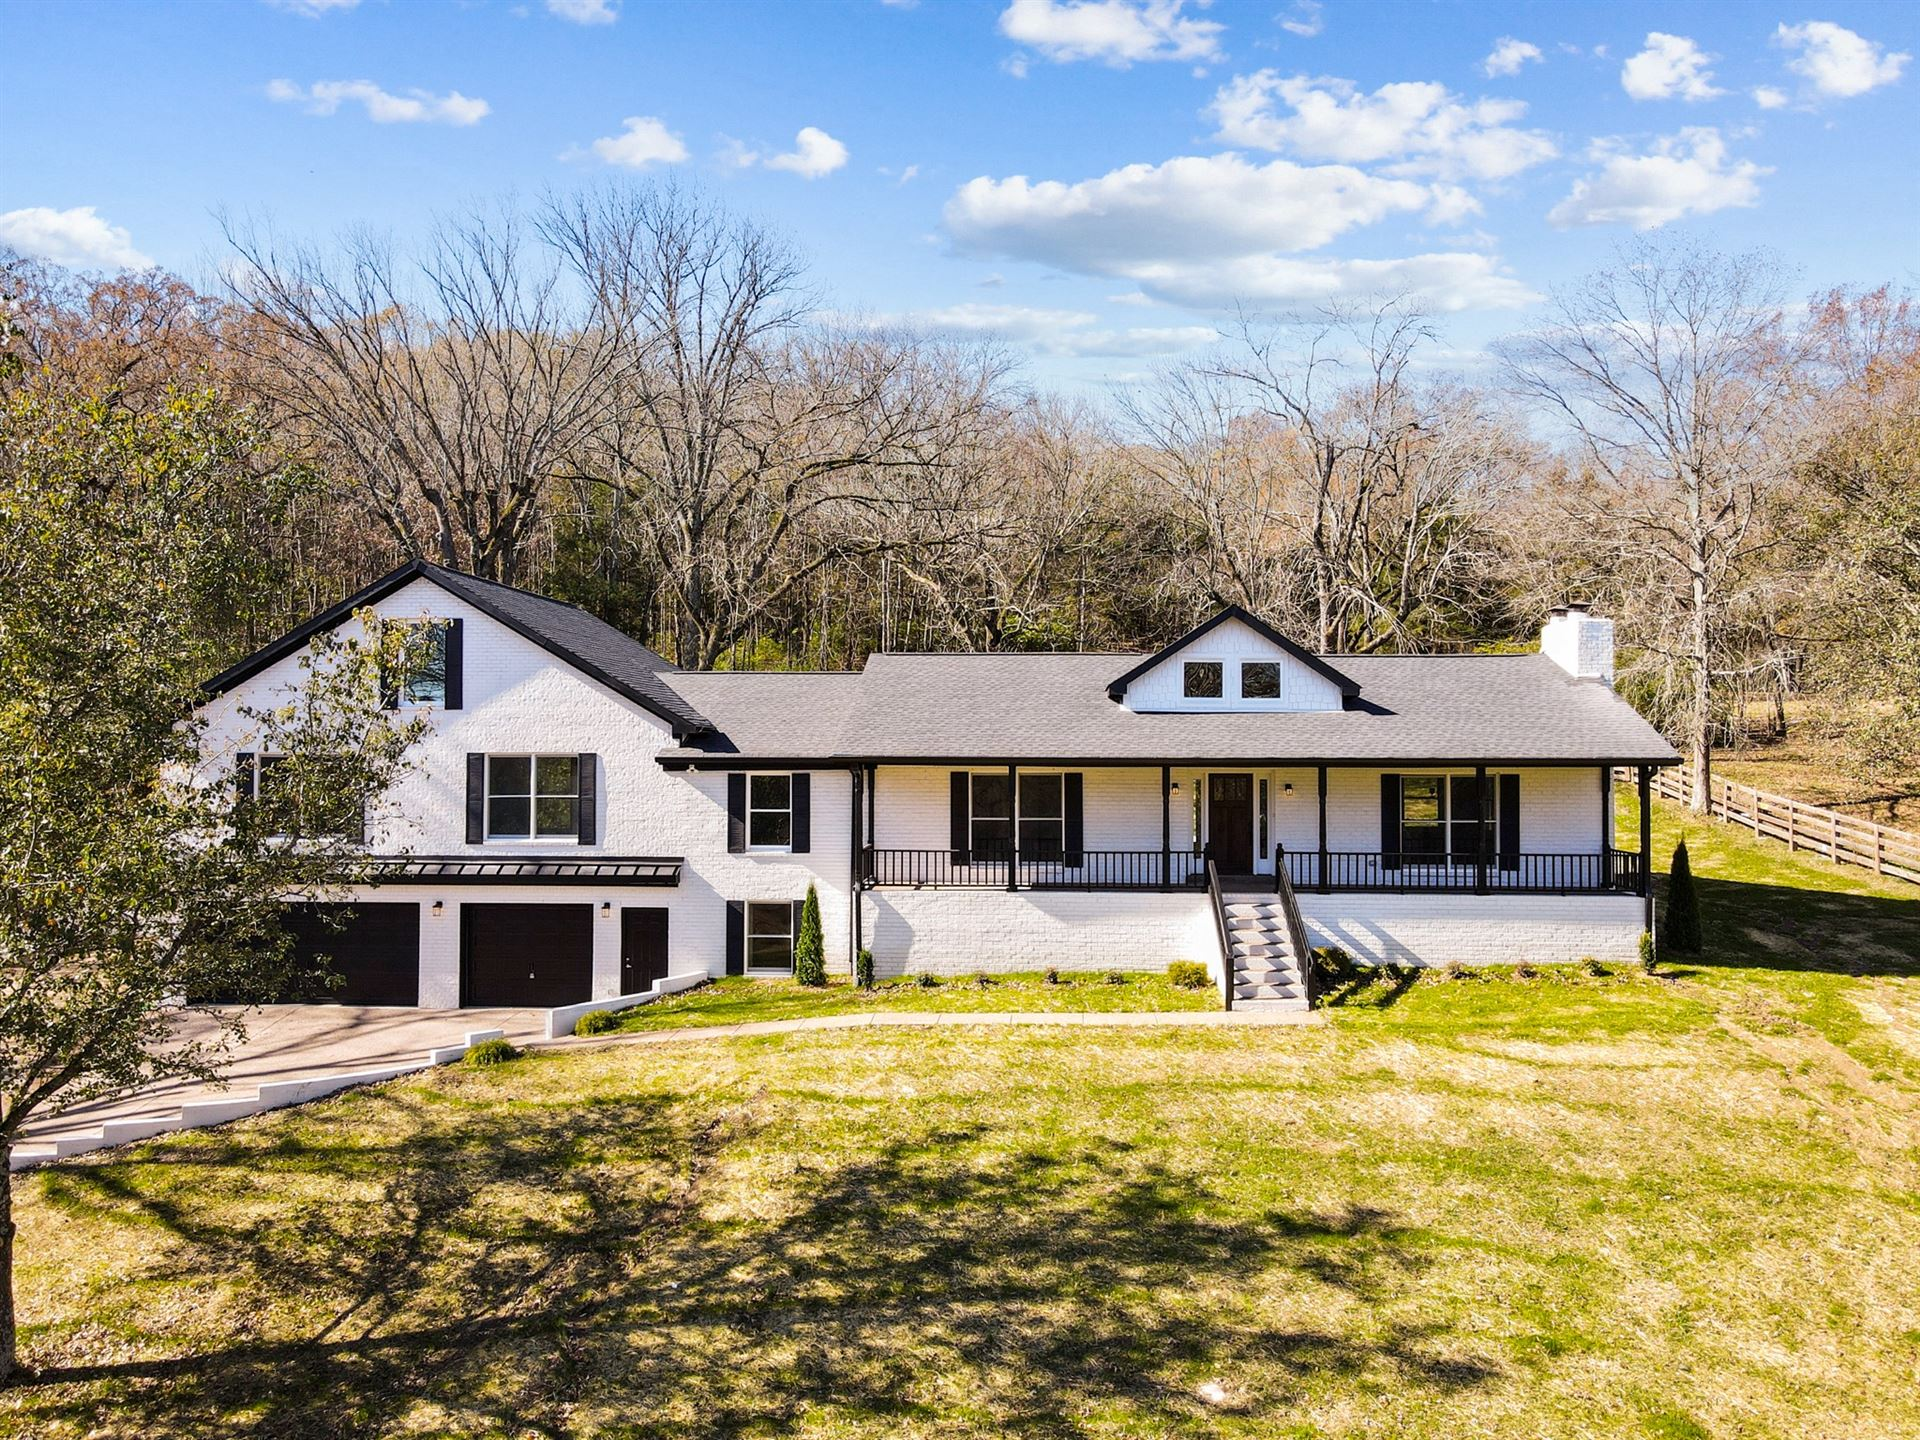 Photo of 505 Franklin Rd, Franklin, TN 37069 (MLS # 2221056)